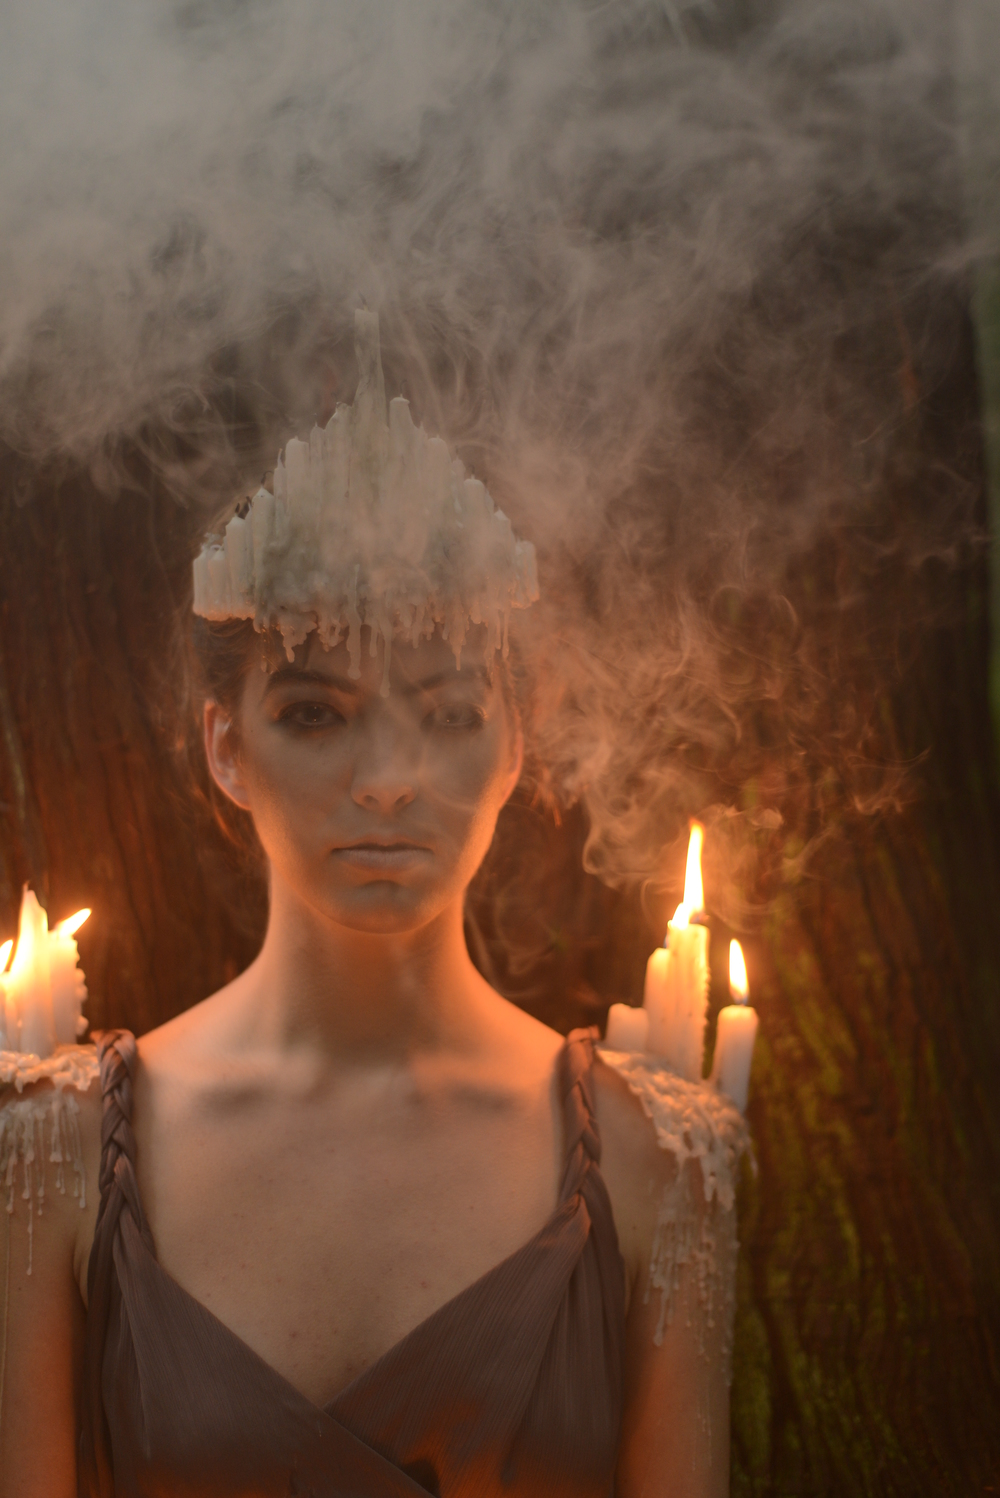 Alexandra holding steady while we light multiple smoke bombs all around her face. I swear I don't torture my models...